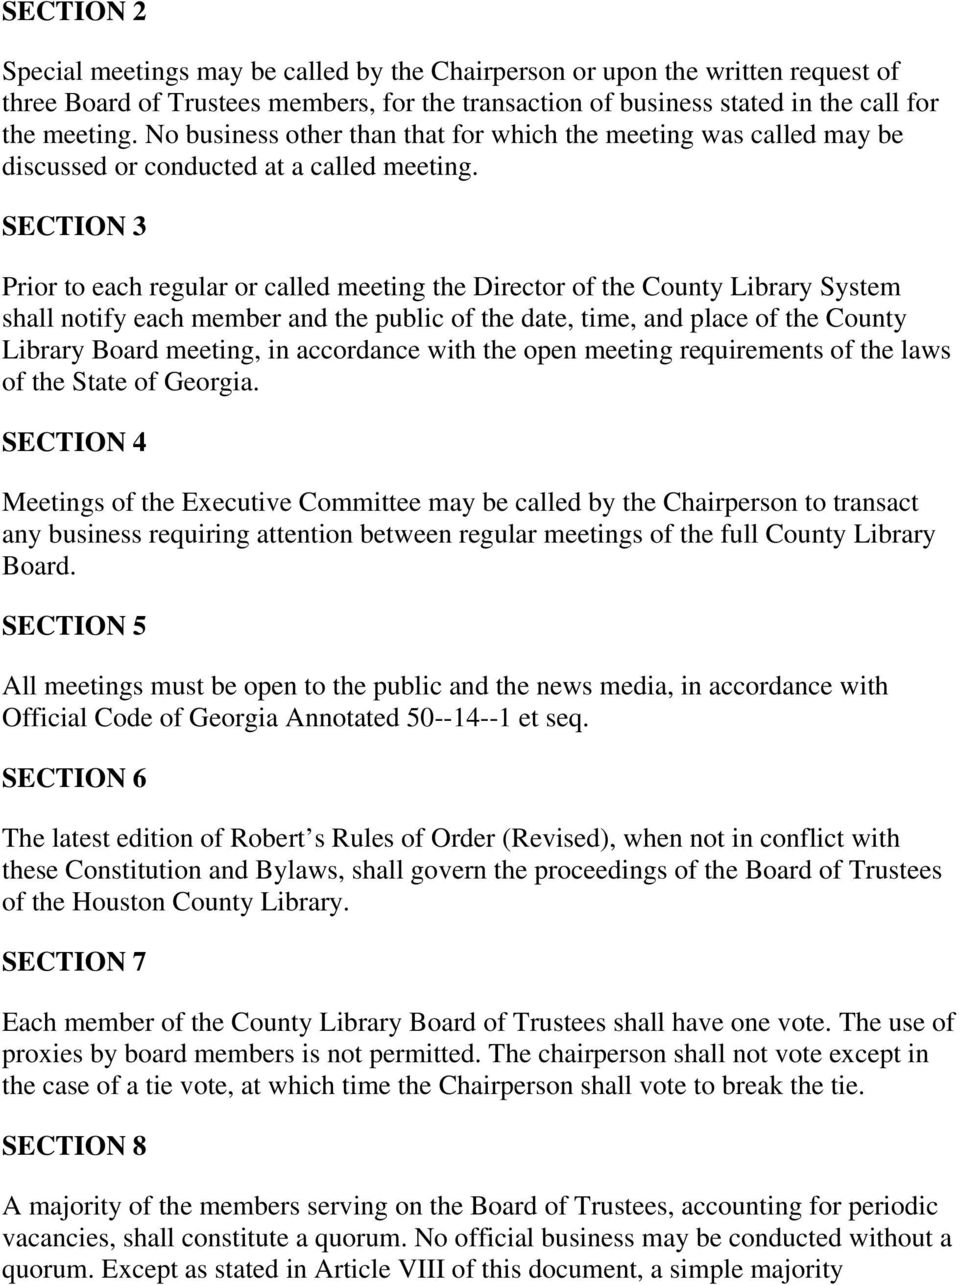 SECTION 3 Prior to each regular or called meeting the Director of the County Library System shall notify each member and the public of the date, time, and place of the County Library Board meeting,